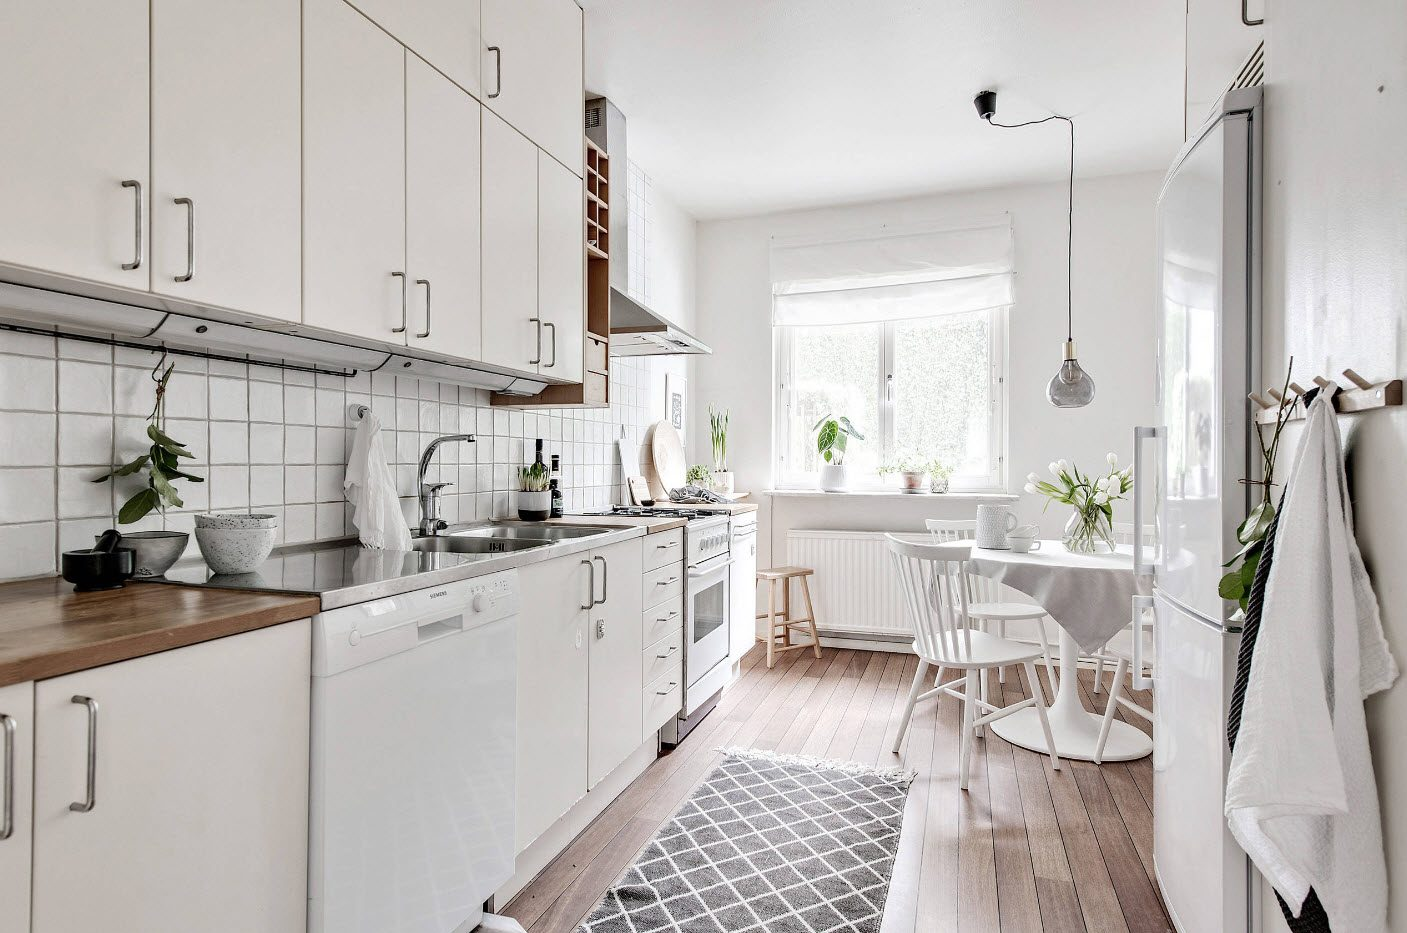 Classic Scandinavian style with wooden floor, dark carpet and simple designed furniture set